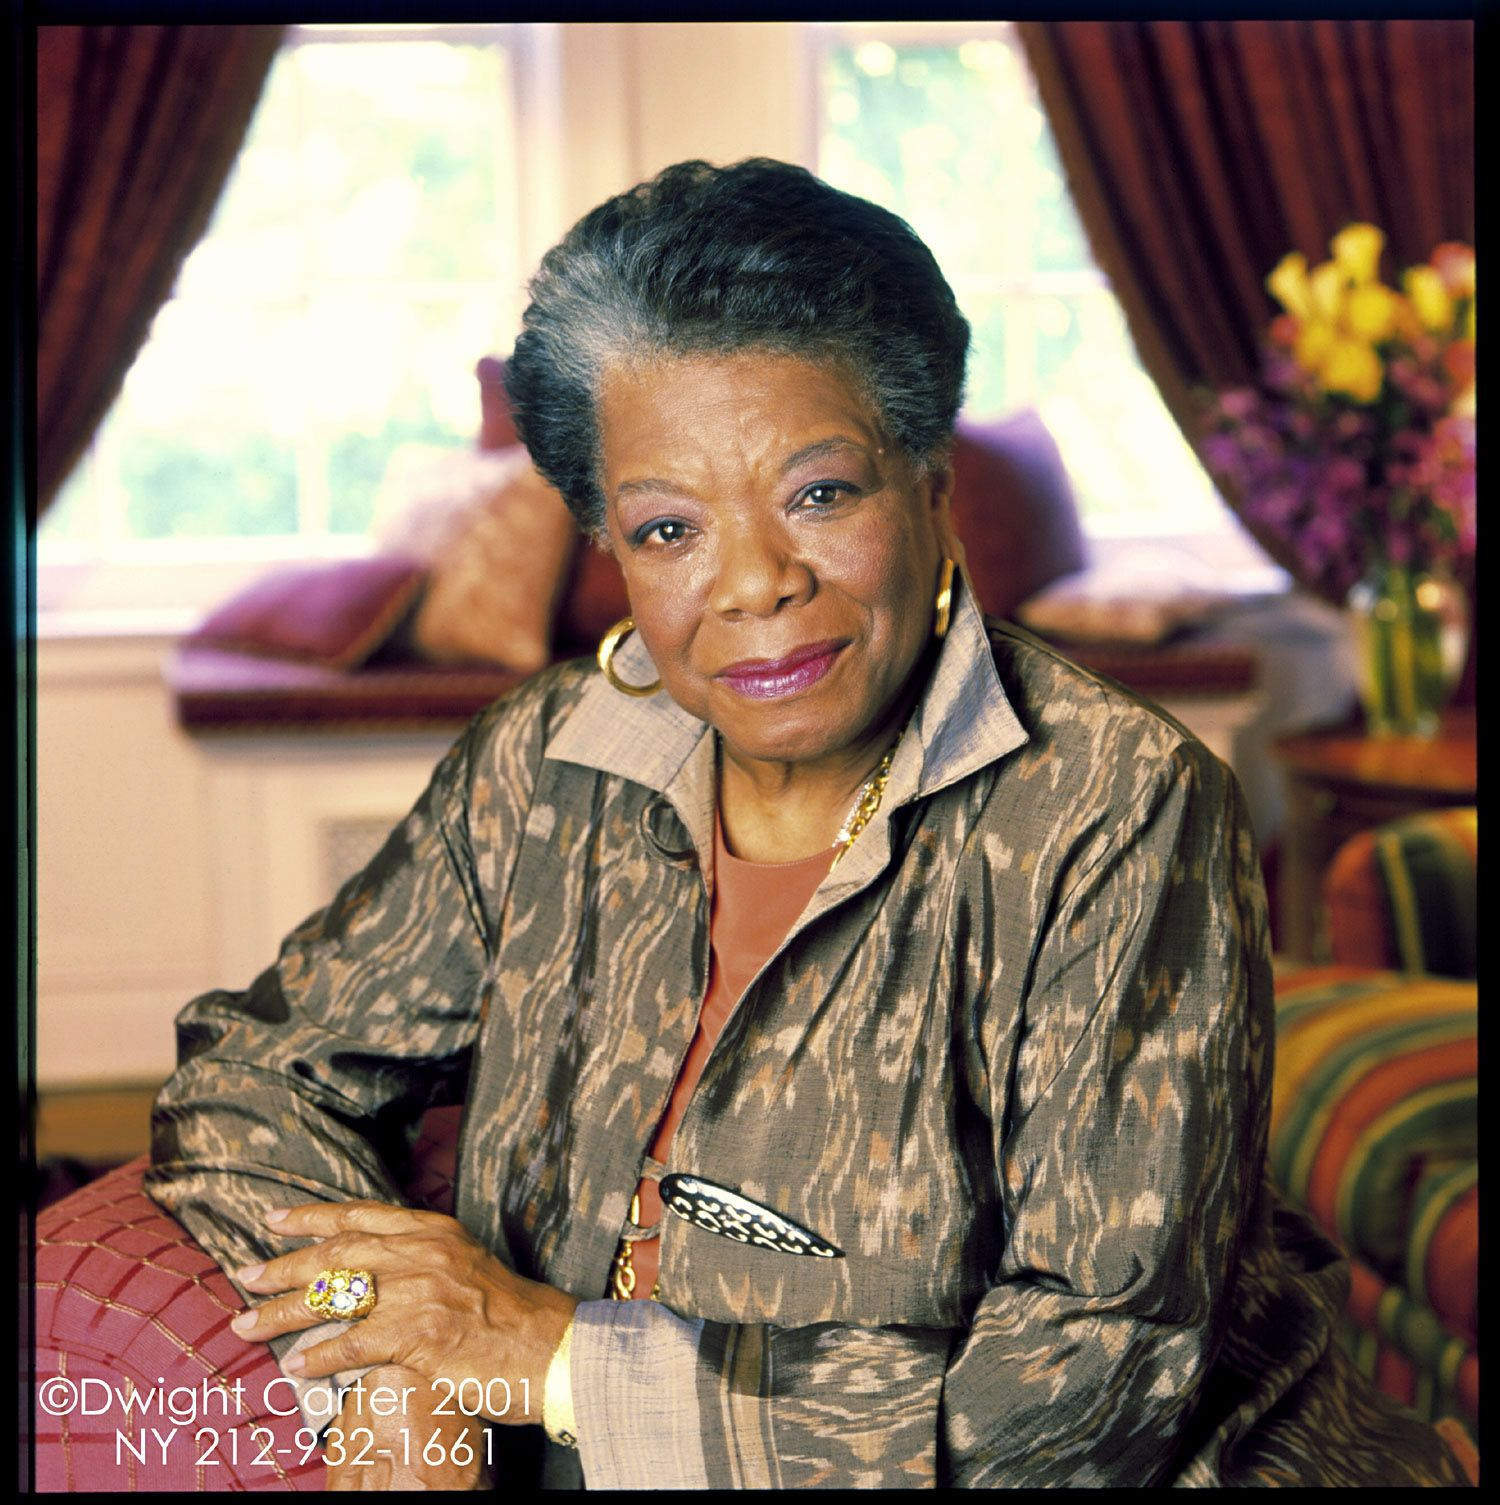 Embrace Maya Angelou's legacy in Digital Form with these Audio Books, Podcasts, Videos and Works of Literature